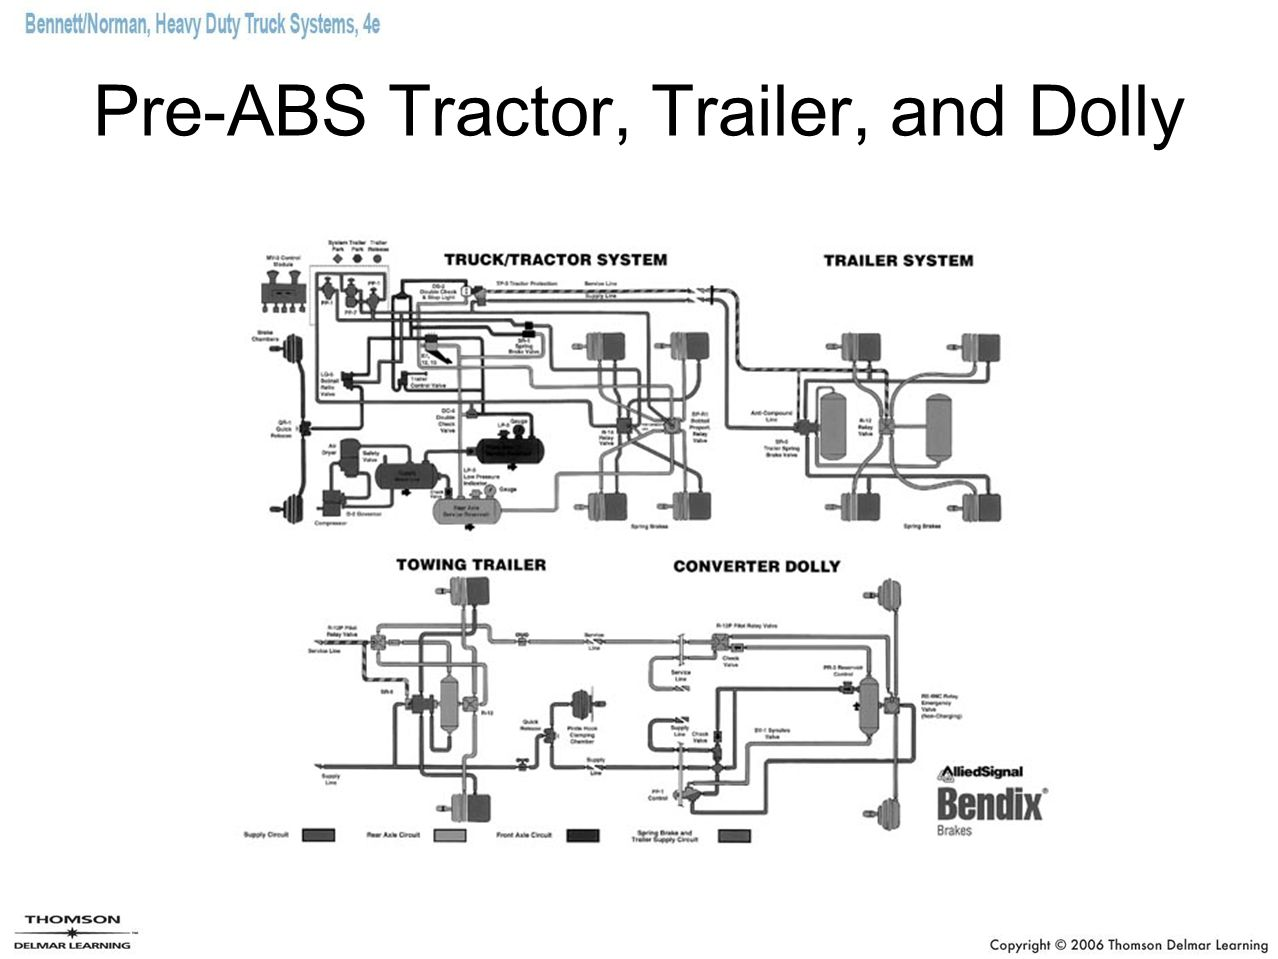 Note Around 95 percent of braking on a loaded tractor/trailer combination involves brake application pressures of 25 psi or less; 85 percent of braking involves brake application pressures of 15 psi or less.